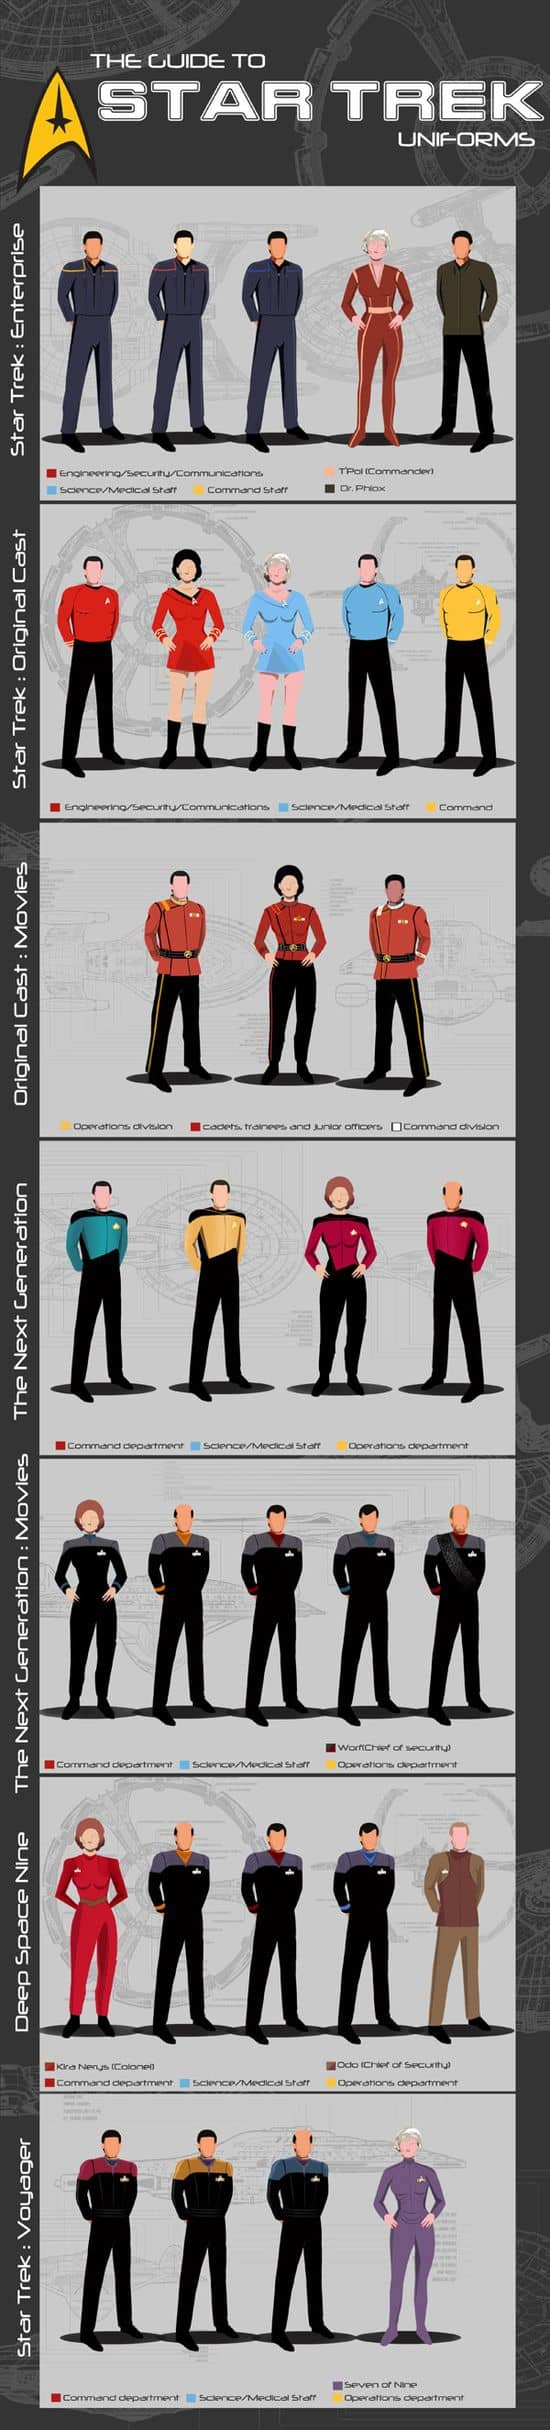 "Leitfaden zu ""Star Trek"" Uniformes"